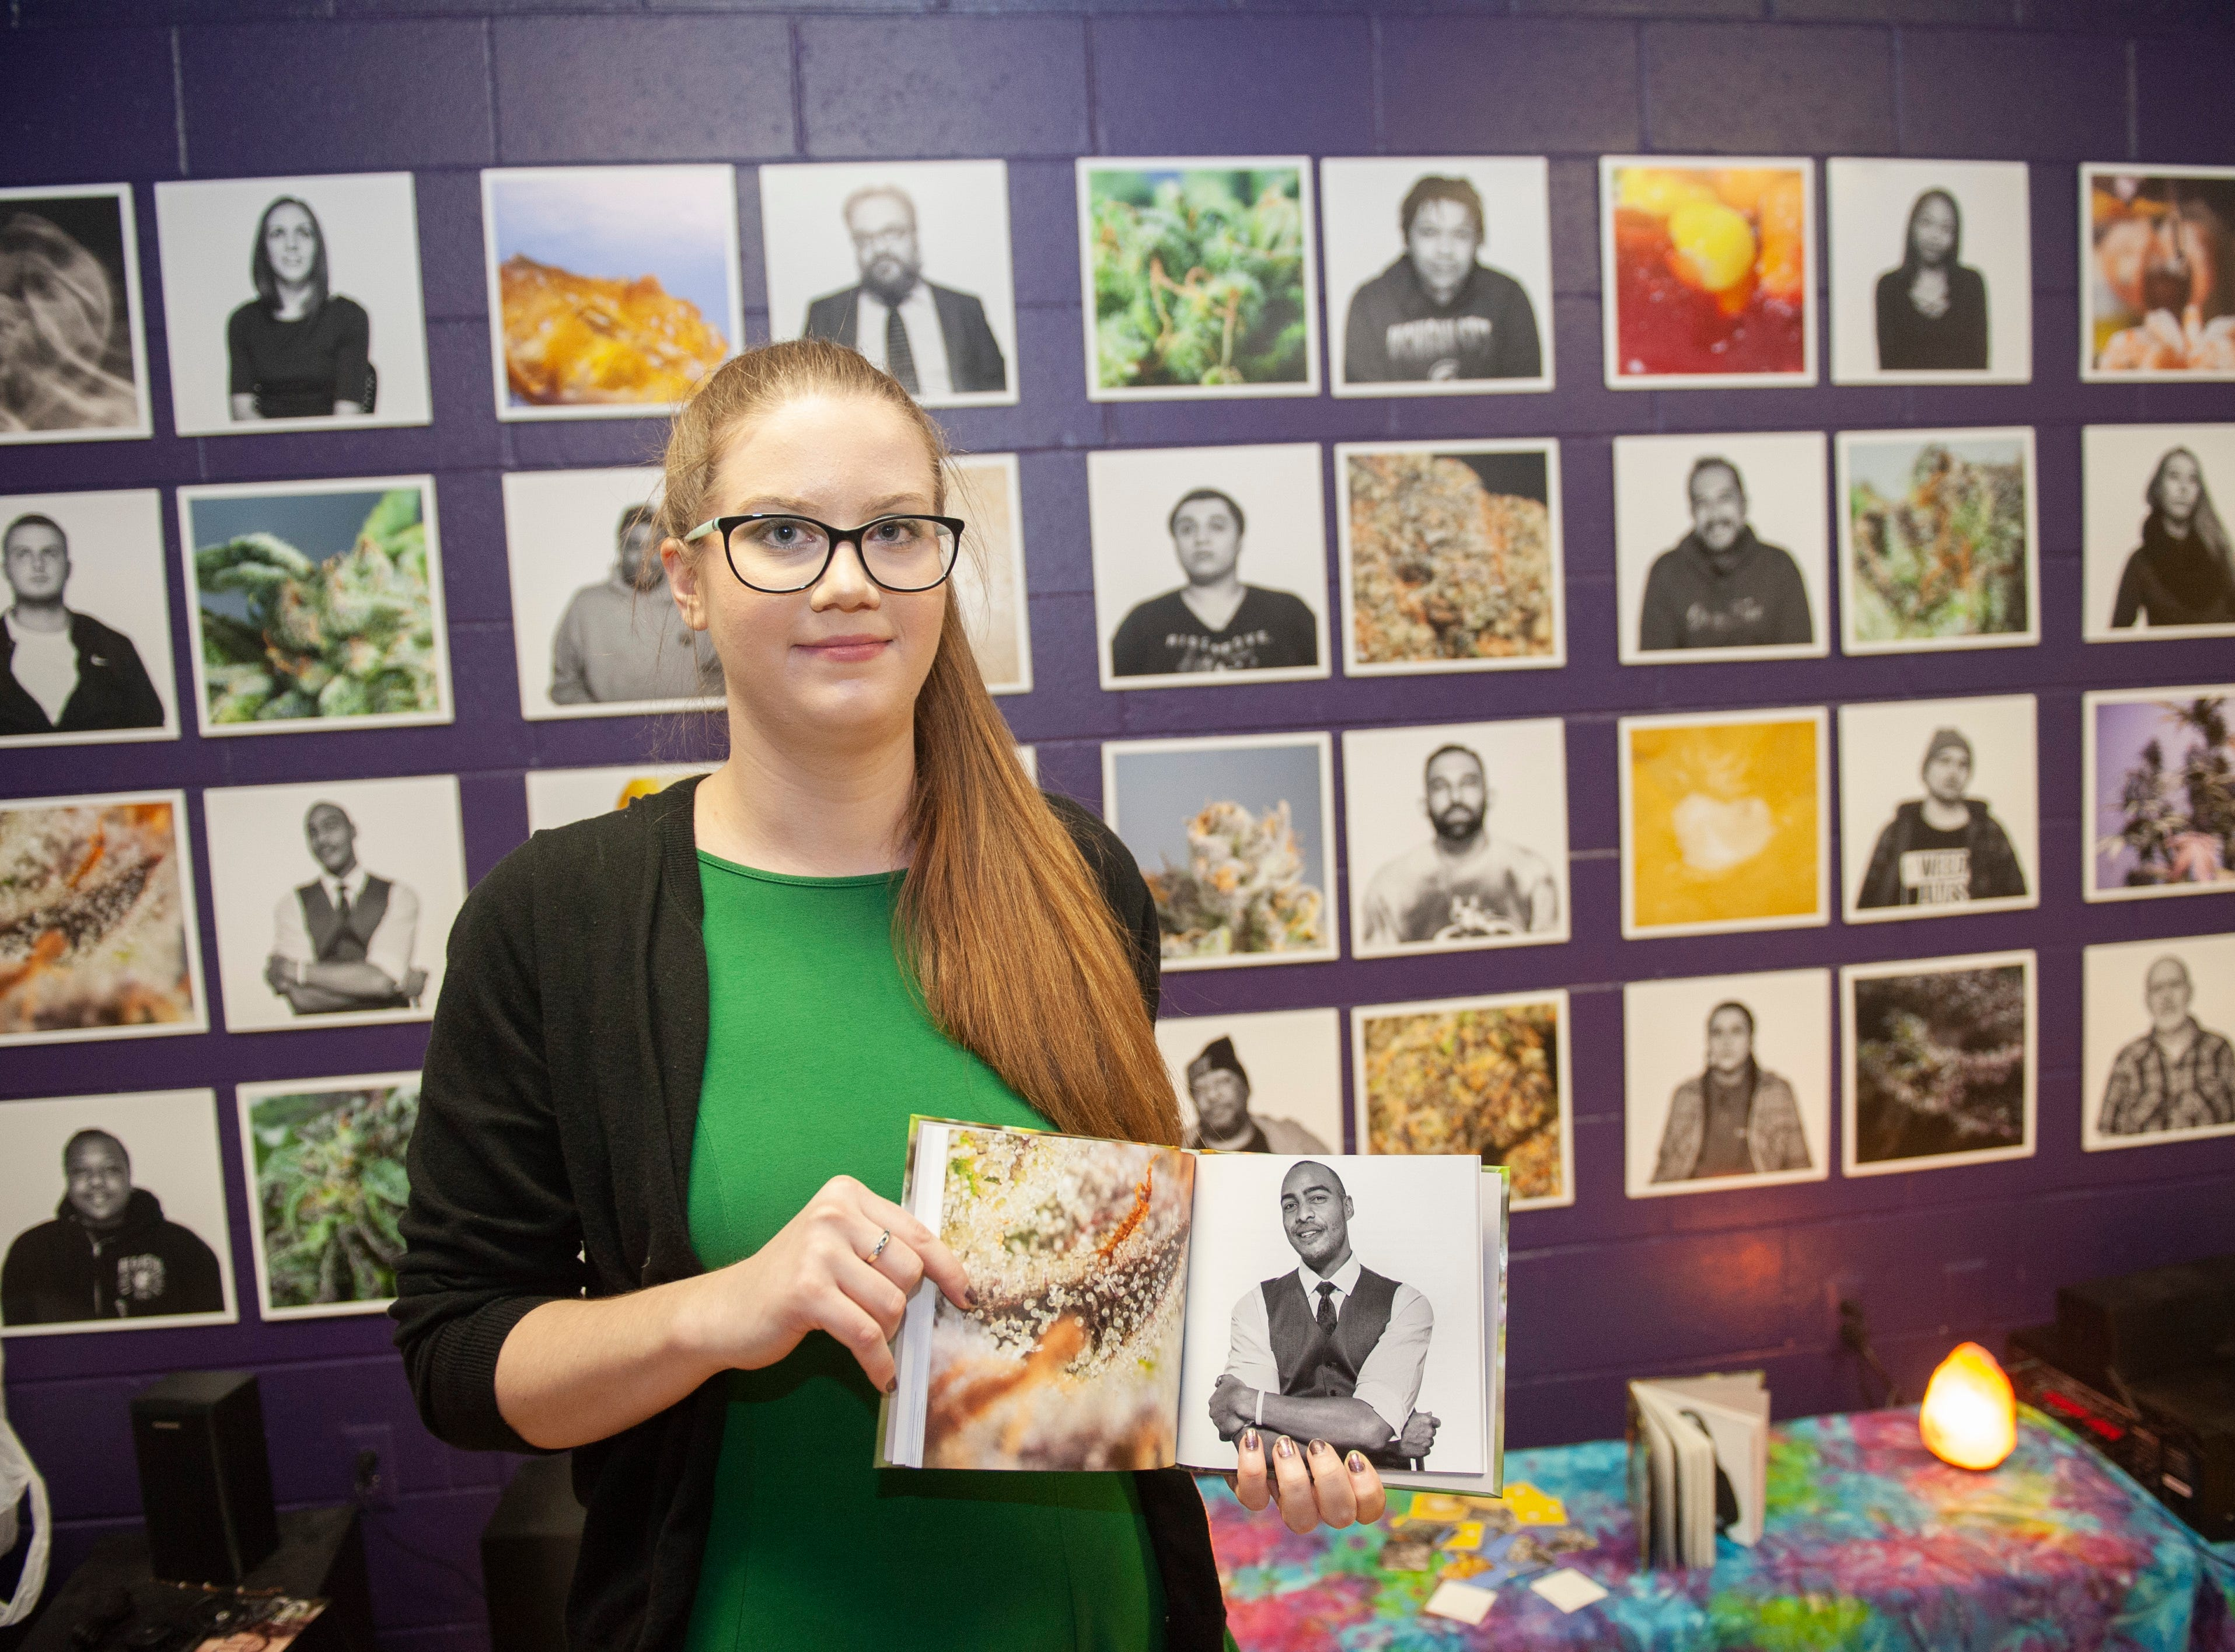 """Photographer Erin Short of Detroit was the featured artist at """"The Art of Cannabis"""" art exhibition and tasting event. The 2018 College for Creative Studies graduate showed her senior thesis project exploring the lives of Michigan medical marijuana patients and their preferred methods of using cannabis."""